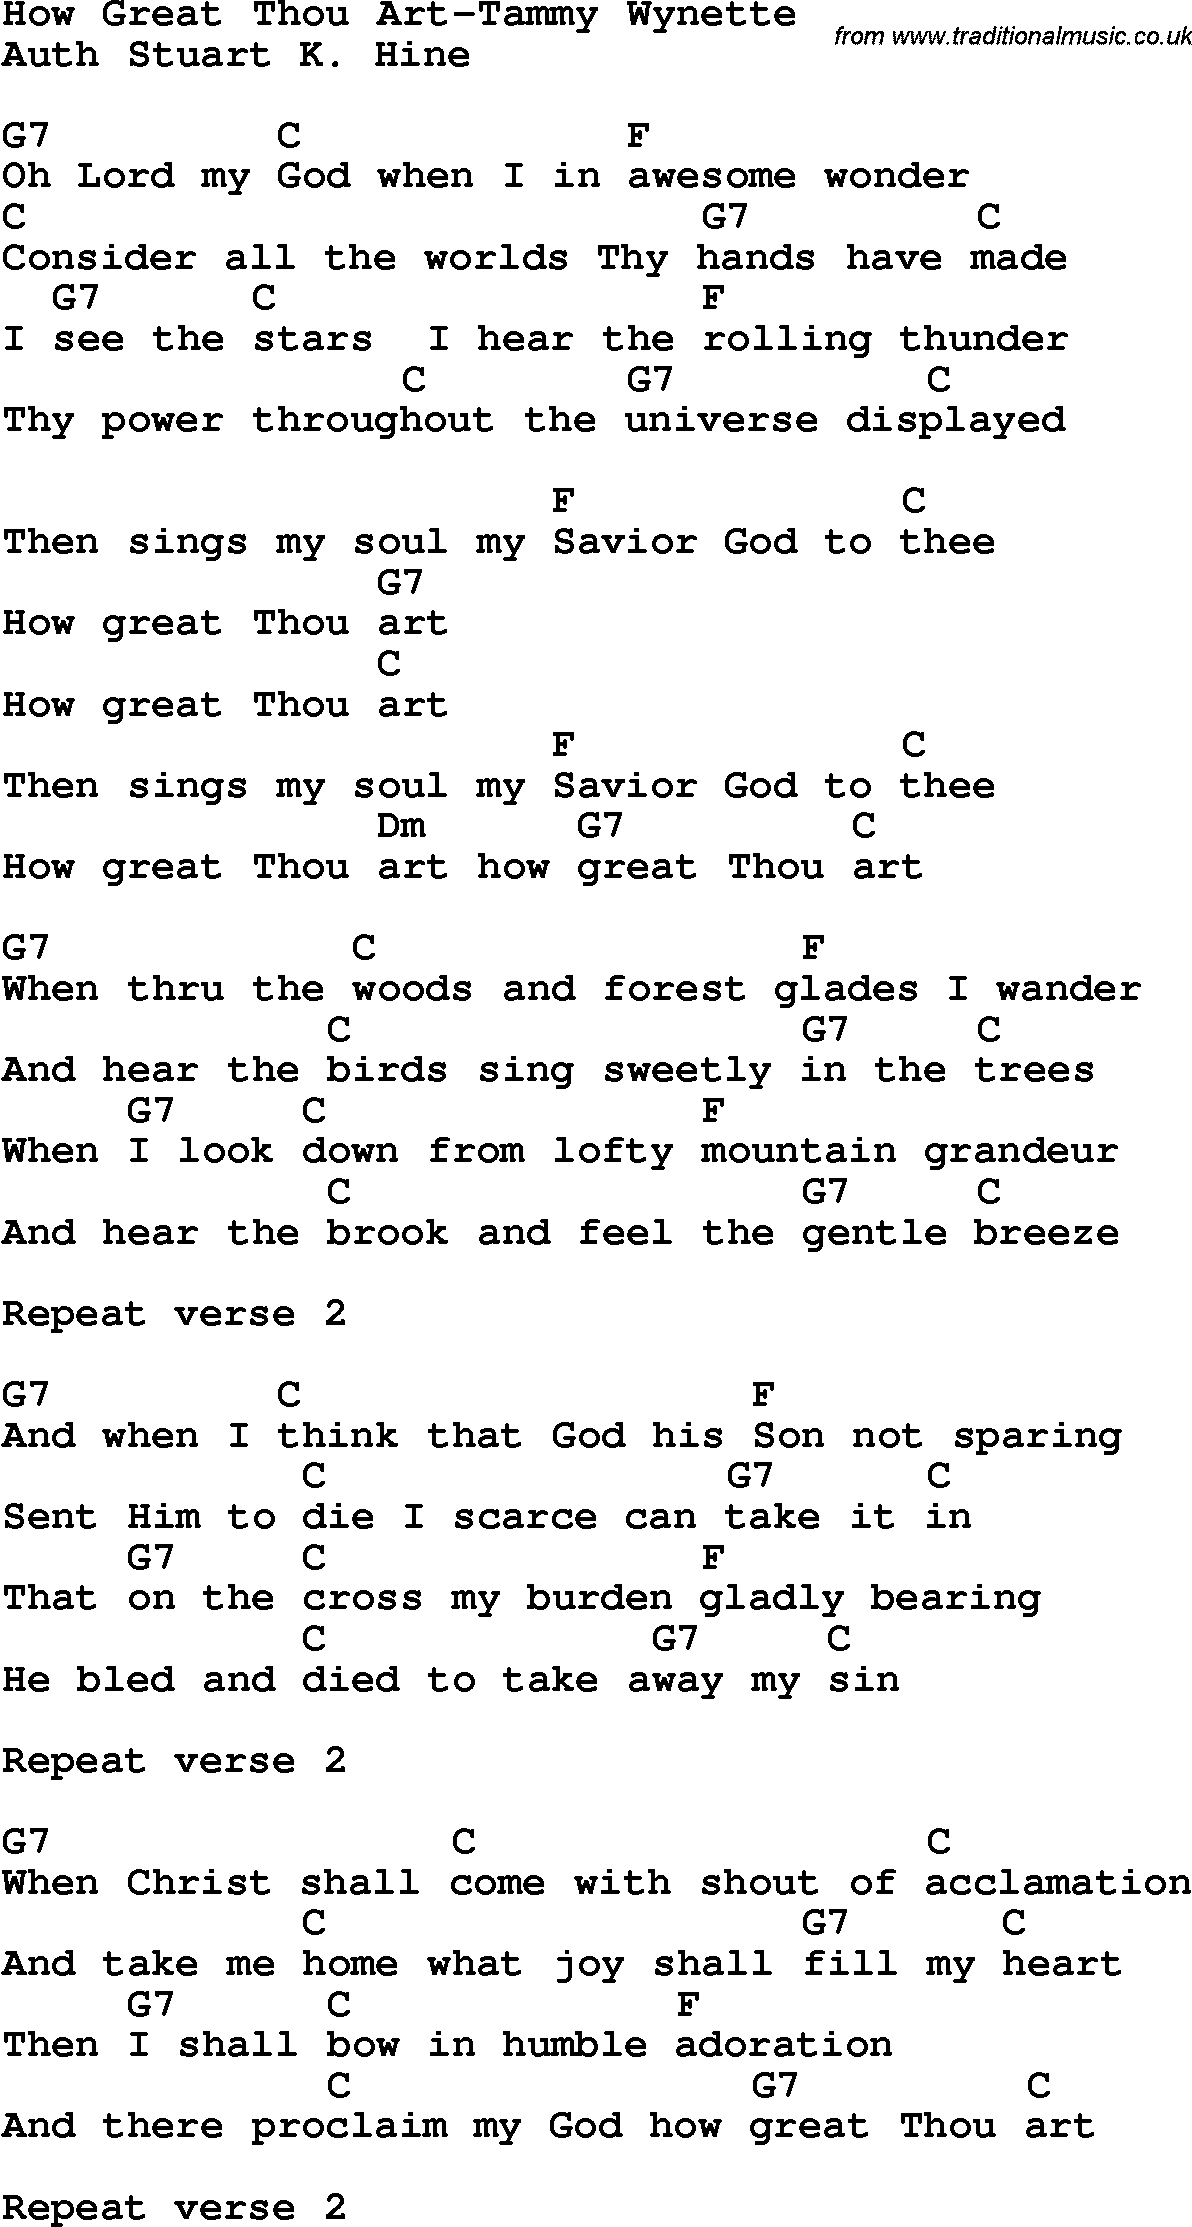 How Great Thou Art Chords Country Southern And Bluegrass Gospel Song How Great Thou Art Tammy